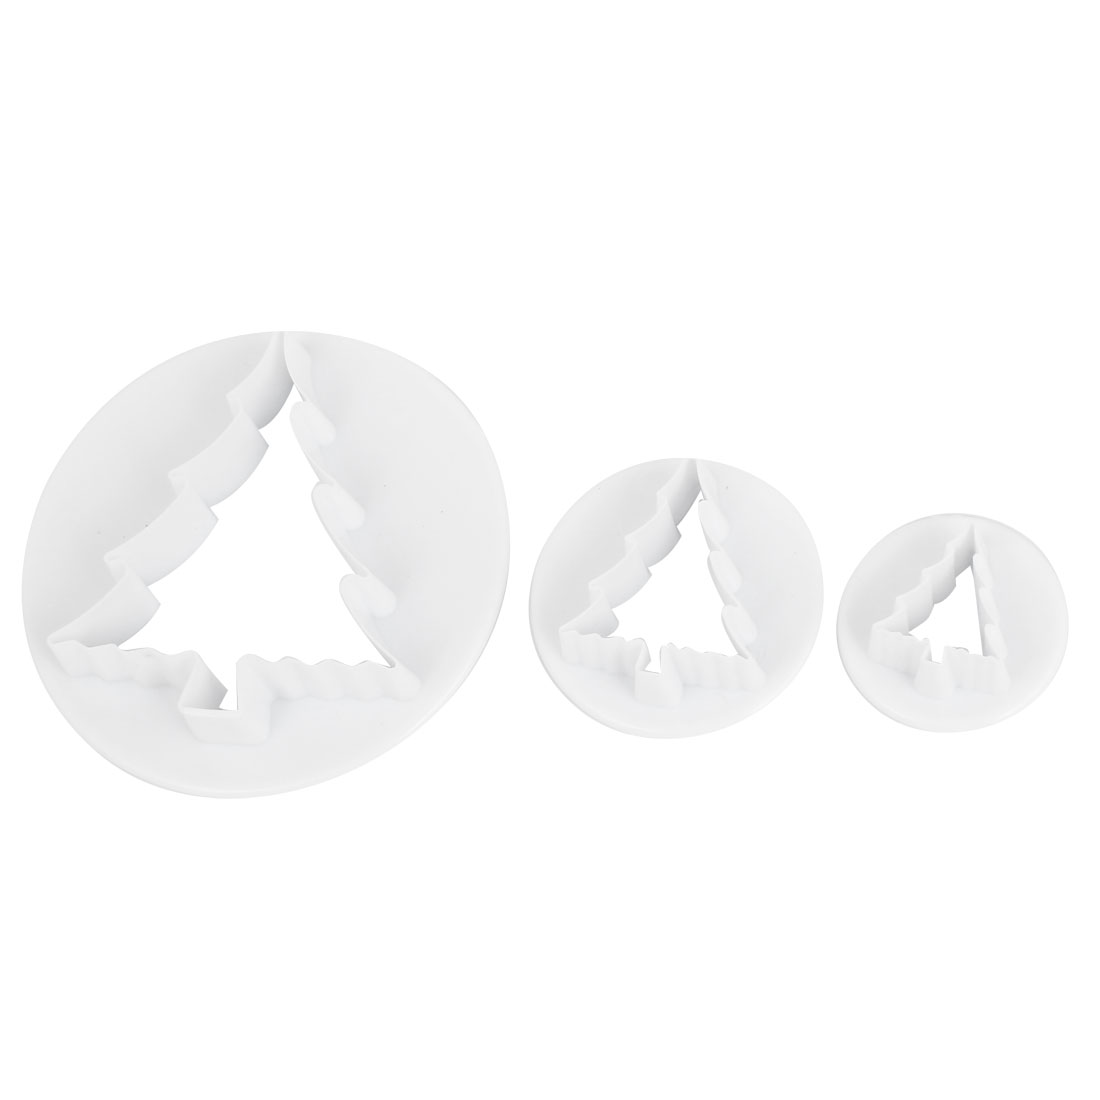 White Pastry Dessert Christmas Tree Design Cookie Sugarcraft Cutter Mold 3 in 1